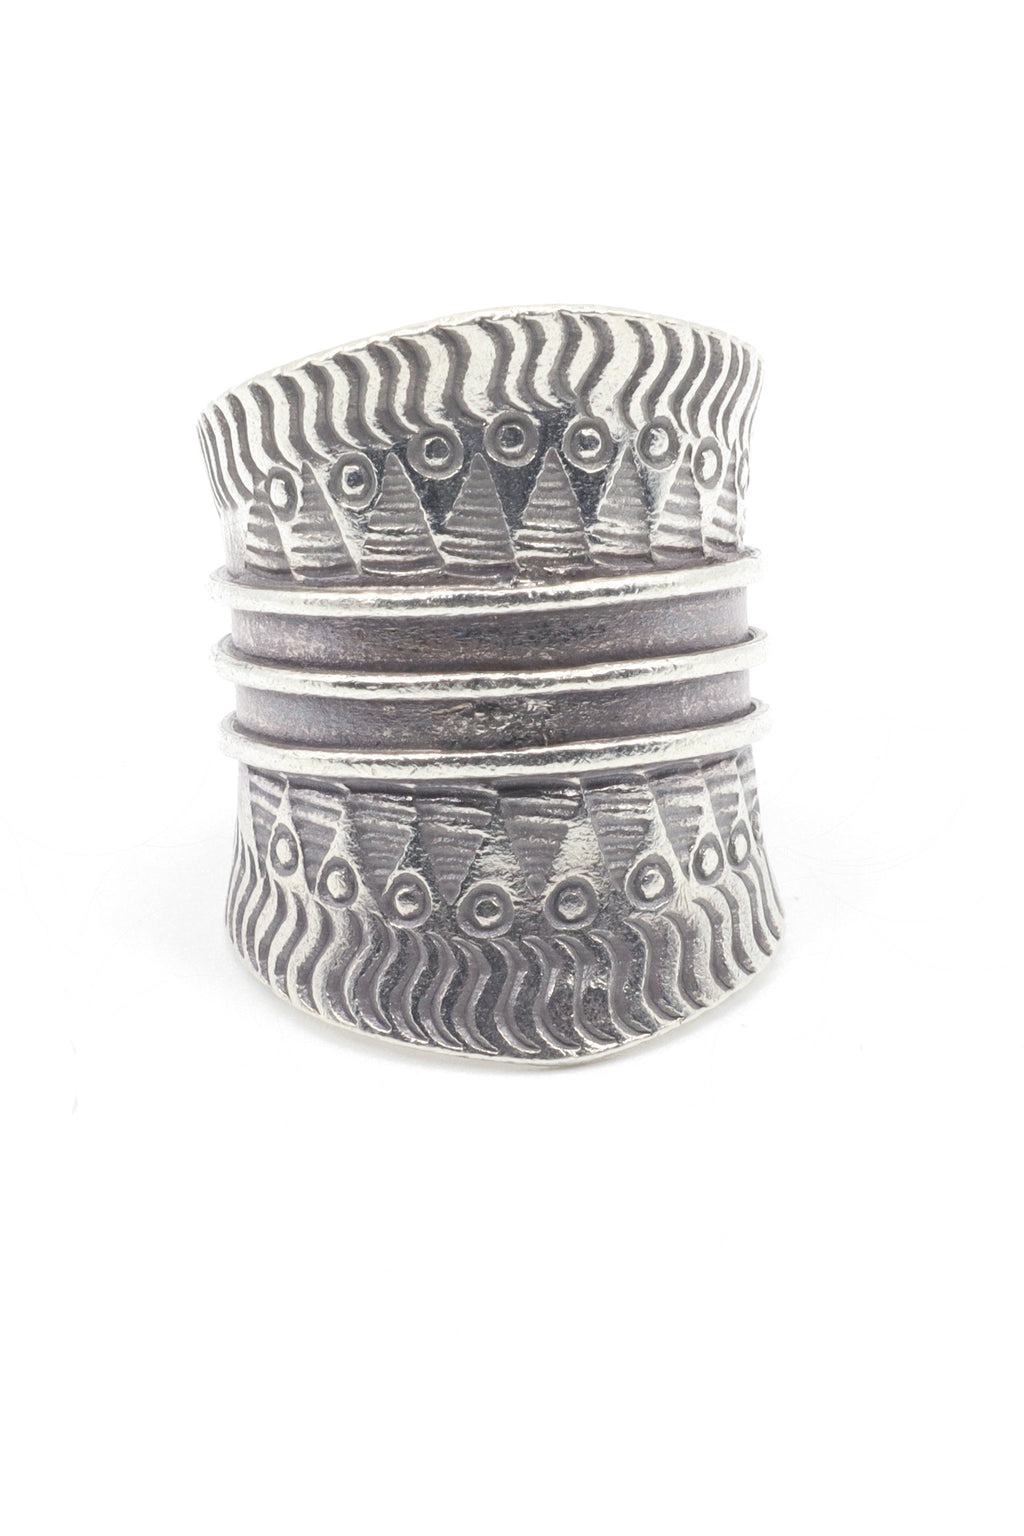 This is a Hill Tribe Ring which is handmade by the Artisans of the Karen Hill Tribe. Hill Tribe Silver has a higher silver content than sterling silver between 99.5 and 99.9%. In other words, its almost pure silver. It is only the solder used to fuse the silver components that create the slighter than 100% pure silver. Each ring is individually made, making slight variances among each piece.